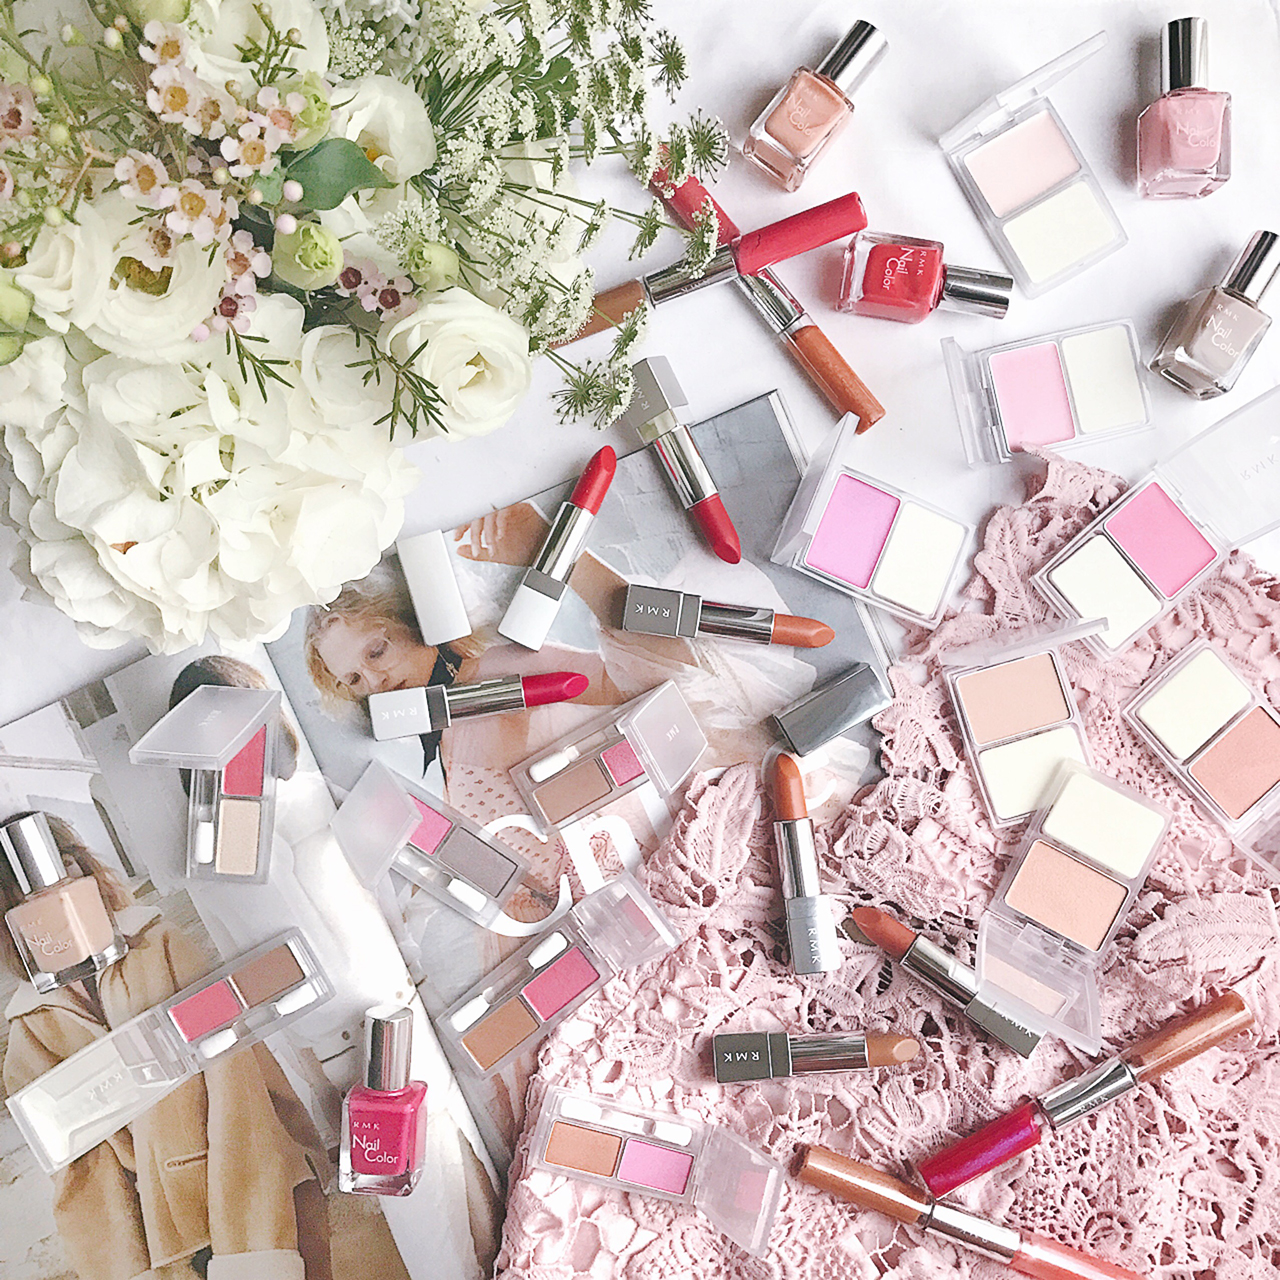 RMK Color Change Collection for Spring 2017